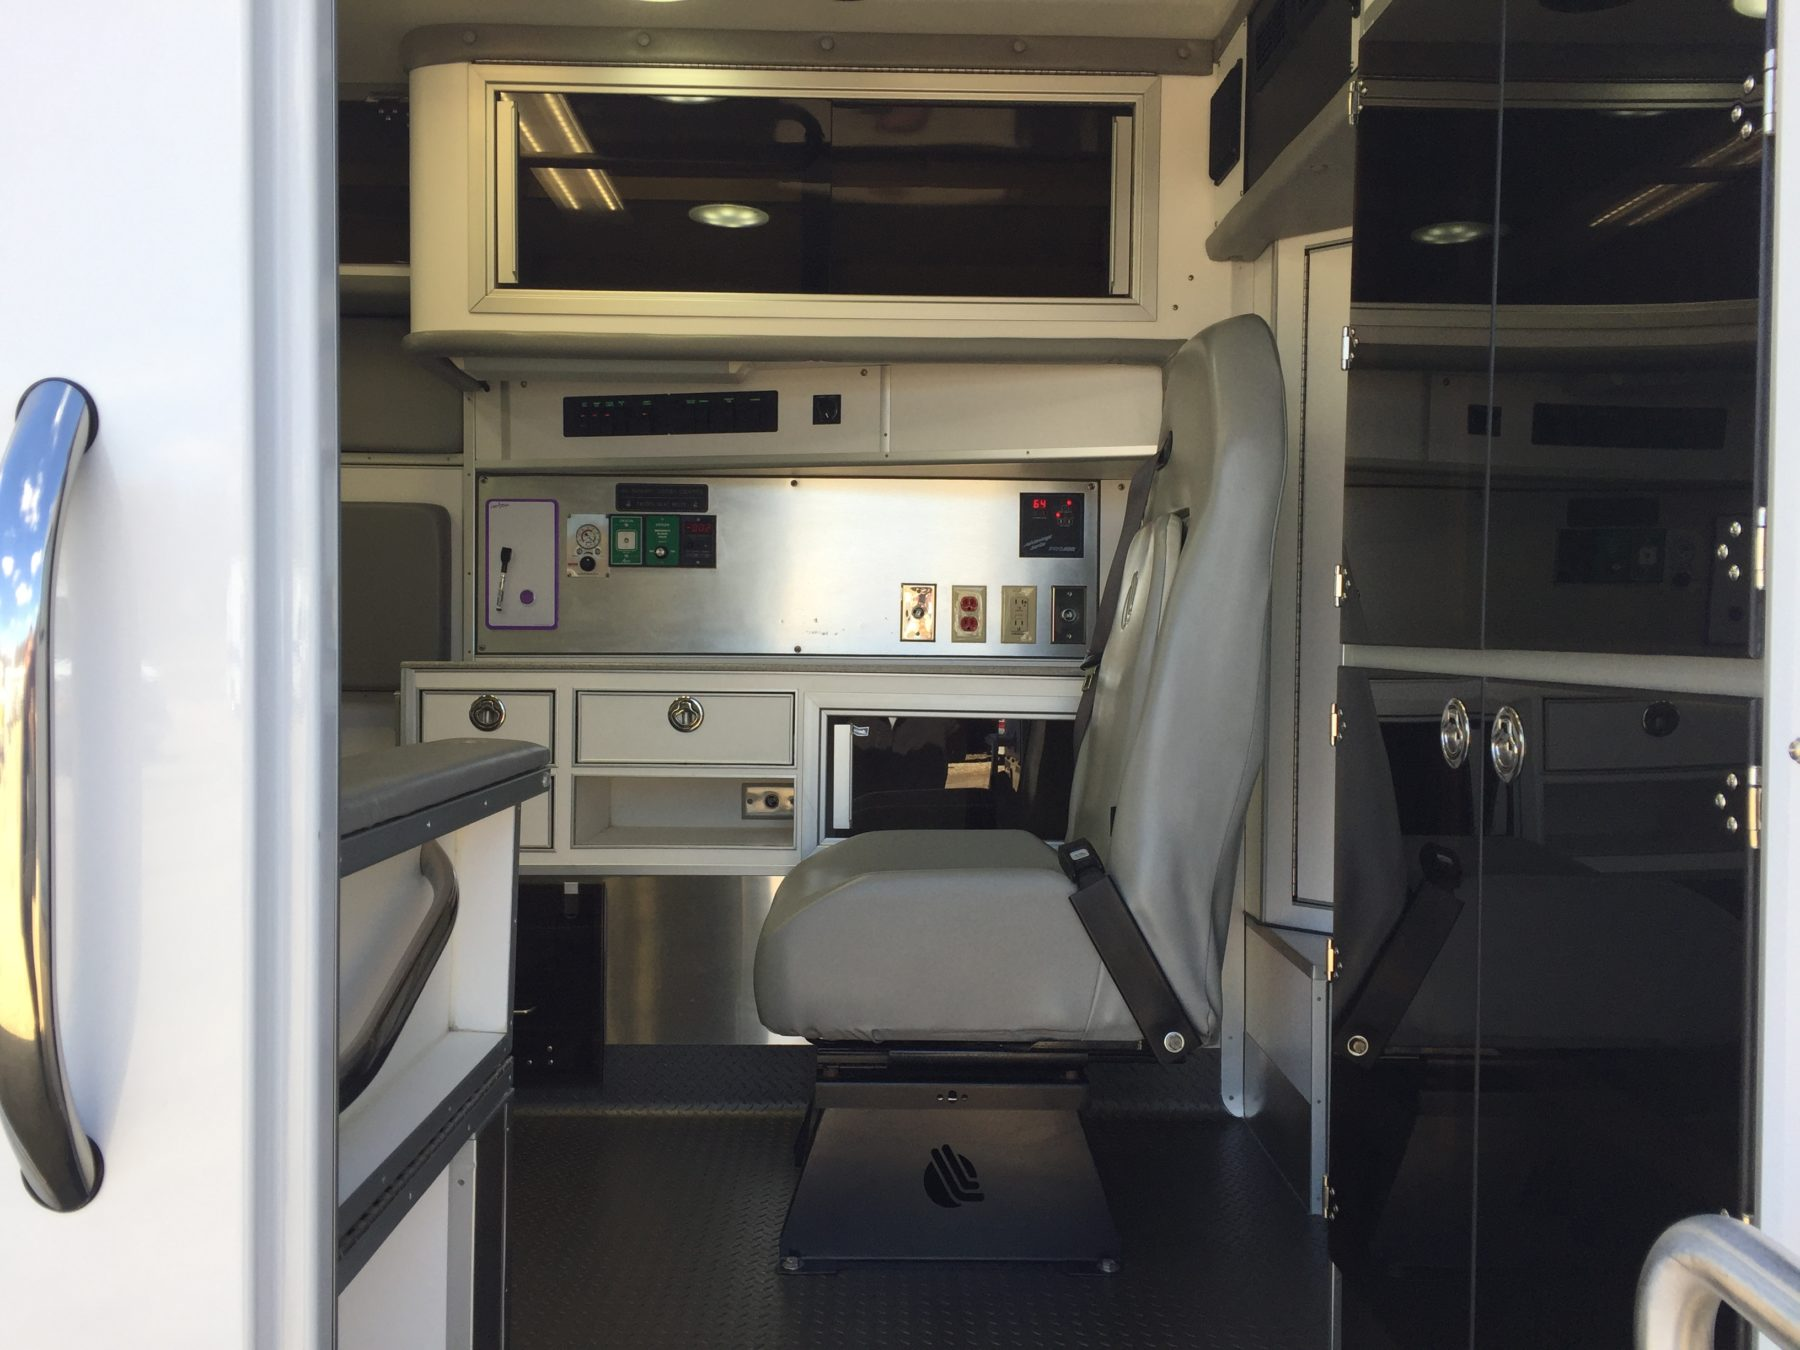 2017 Chevrolet K3500 4x4 Type 1 Ambulance For Sale – Picture 12